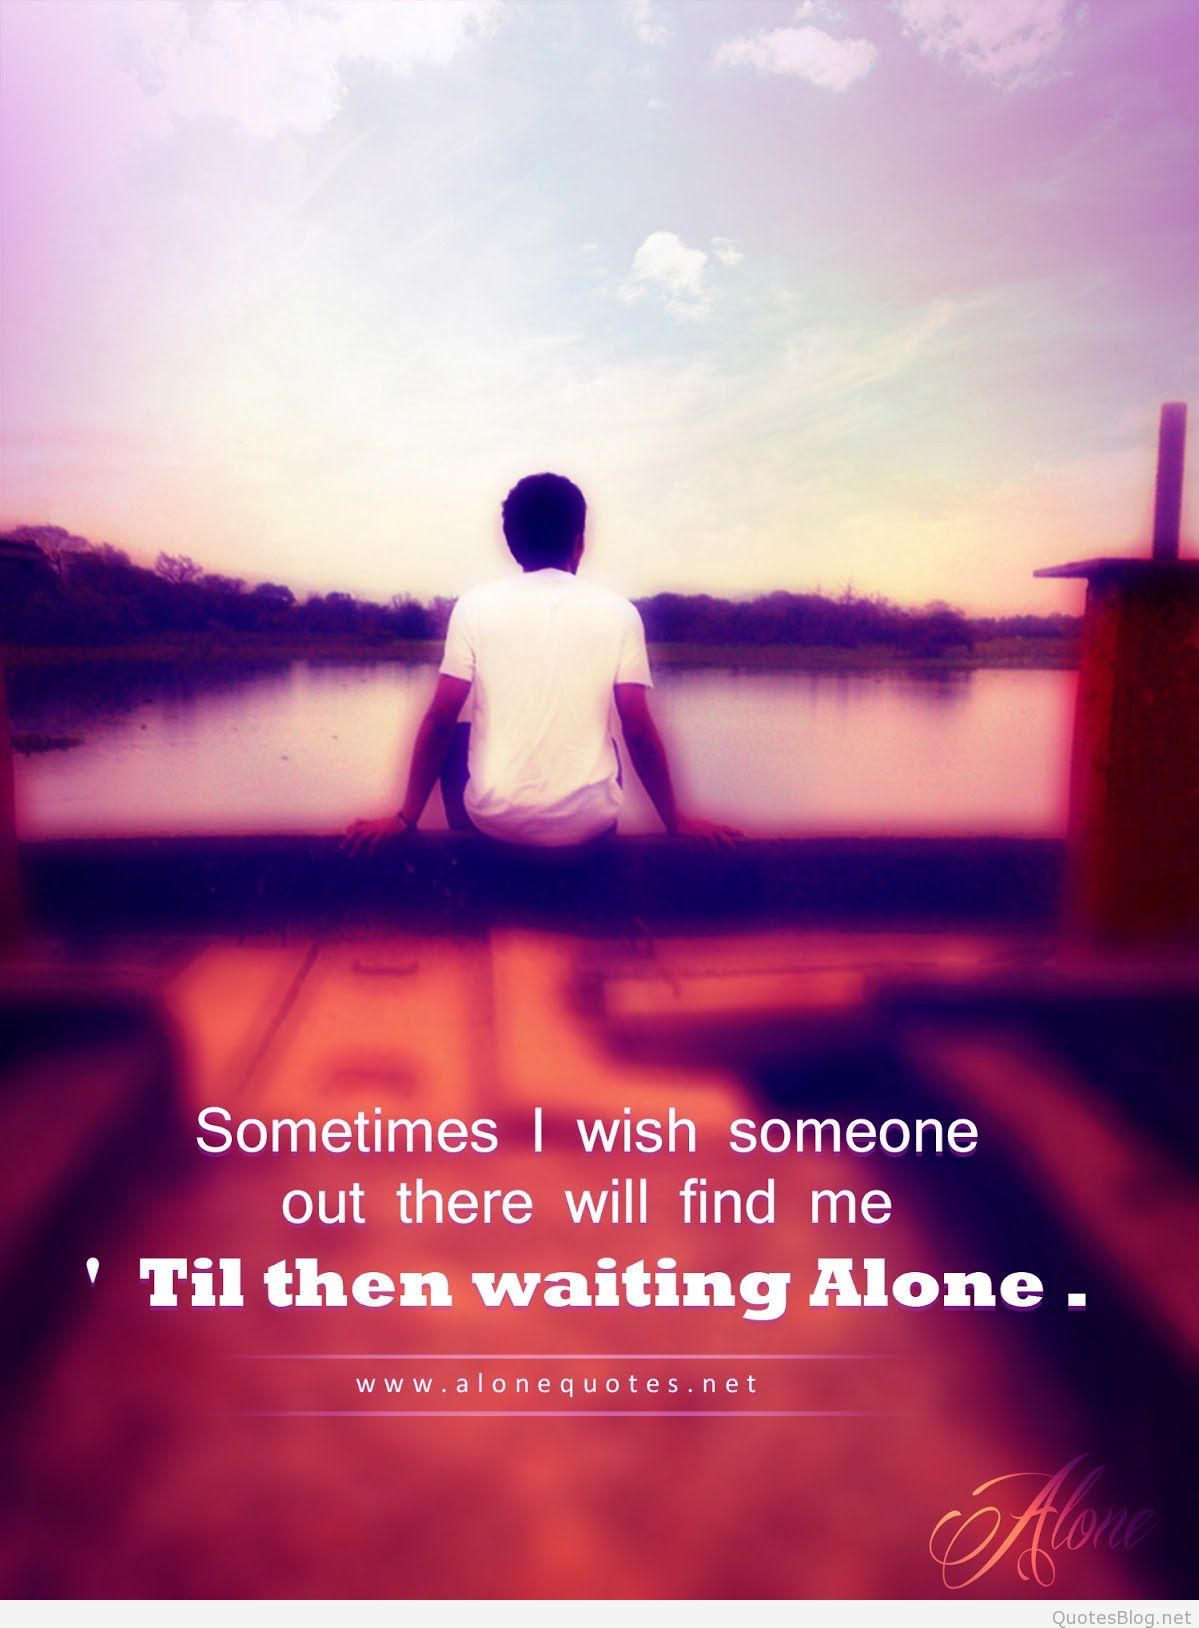 Sad love quotes for boys sad alone boy love quotes wallpaper download sad alone boy love cool